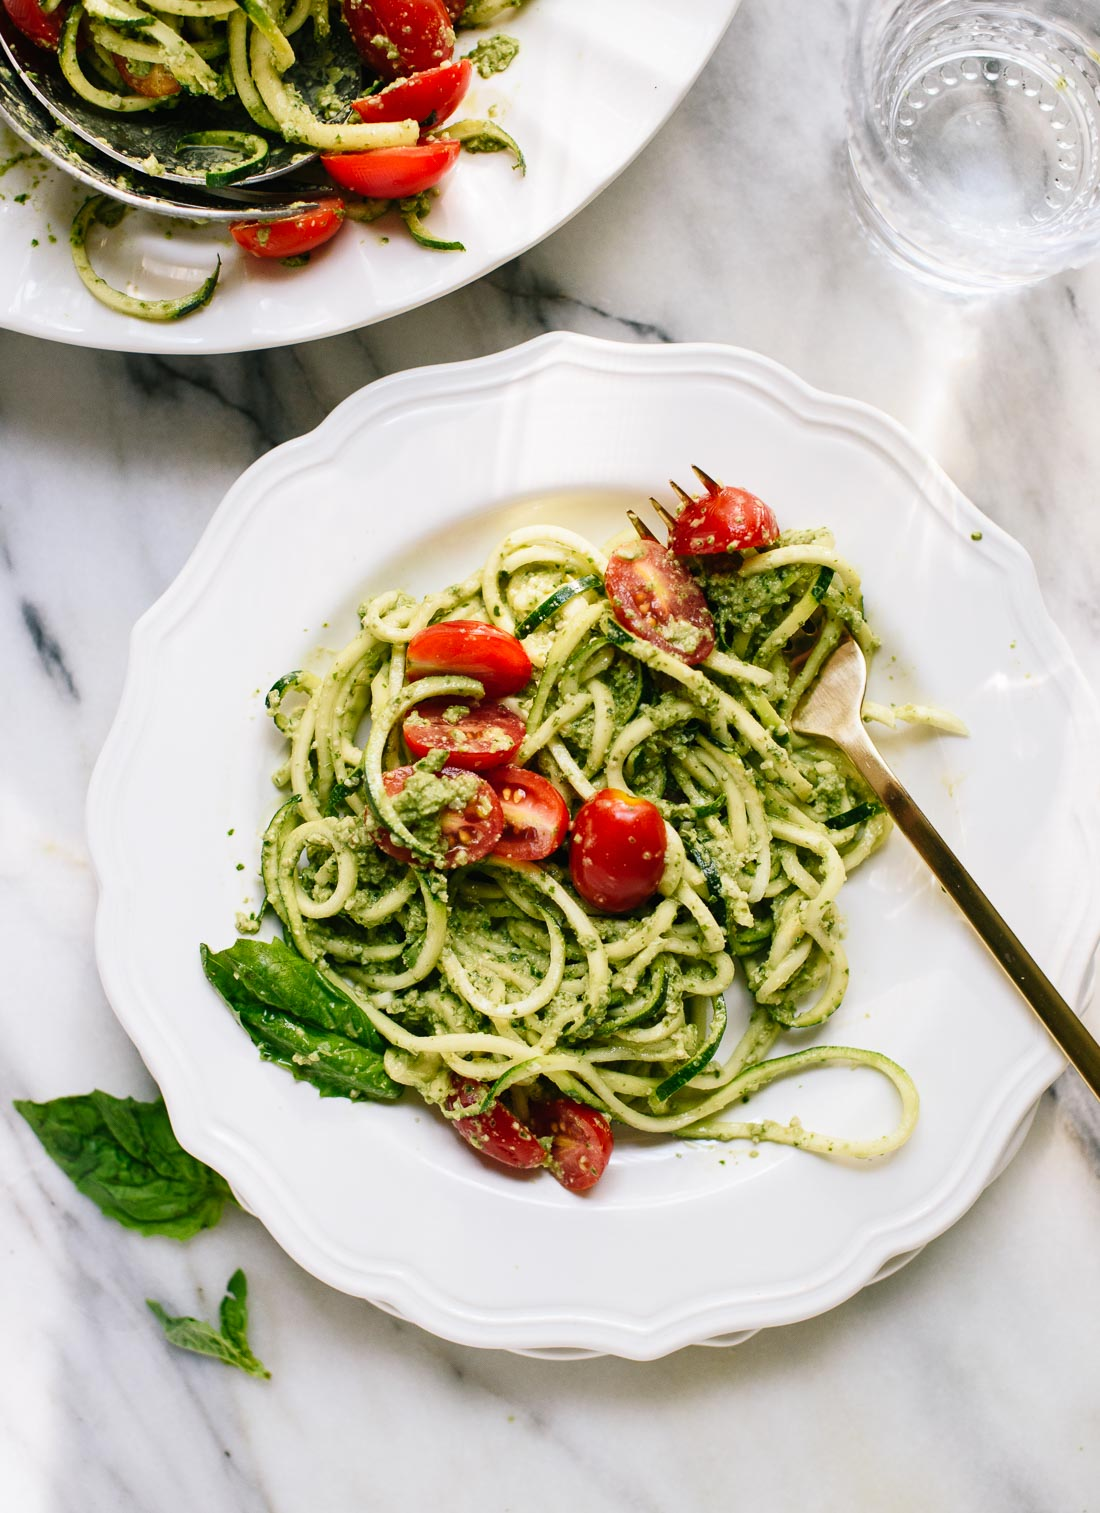 Zoodles with Mint Chimichurri and Tomatoes